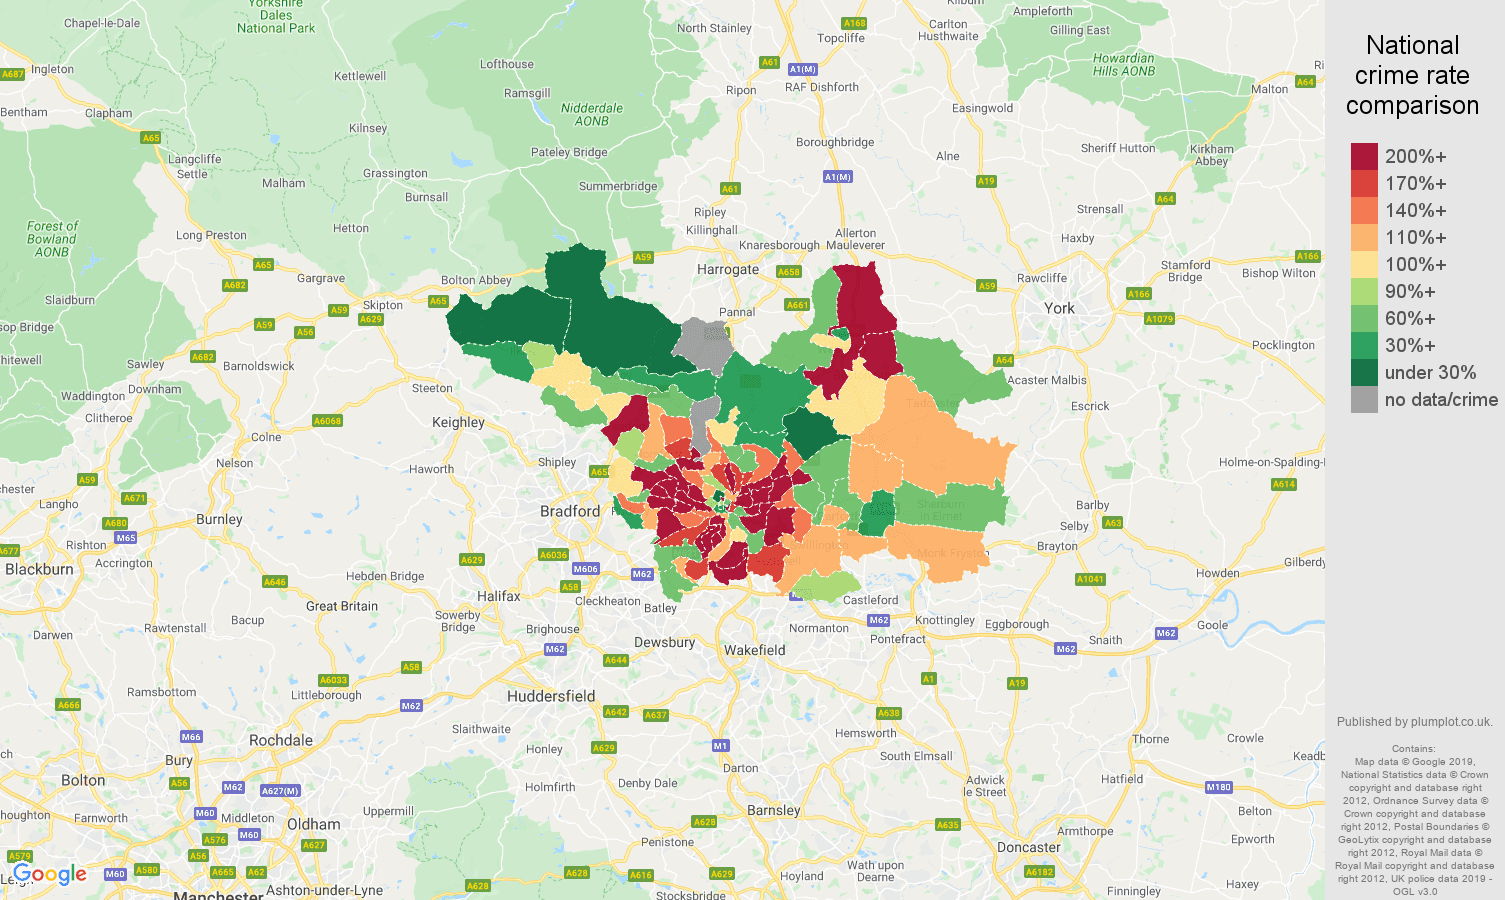 Leeds other crime rate comparison map